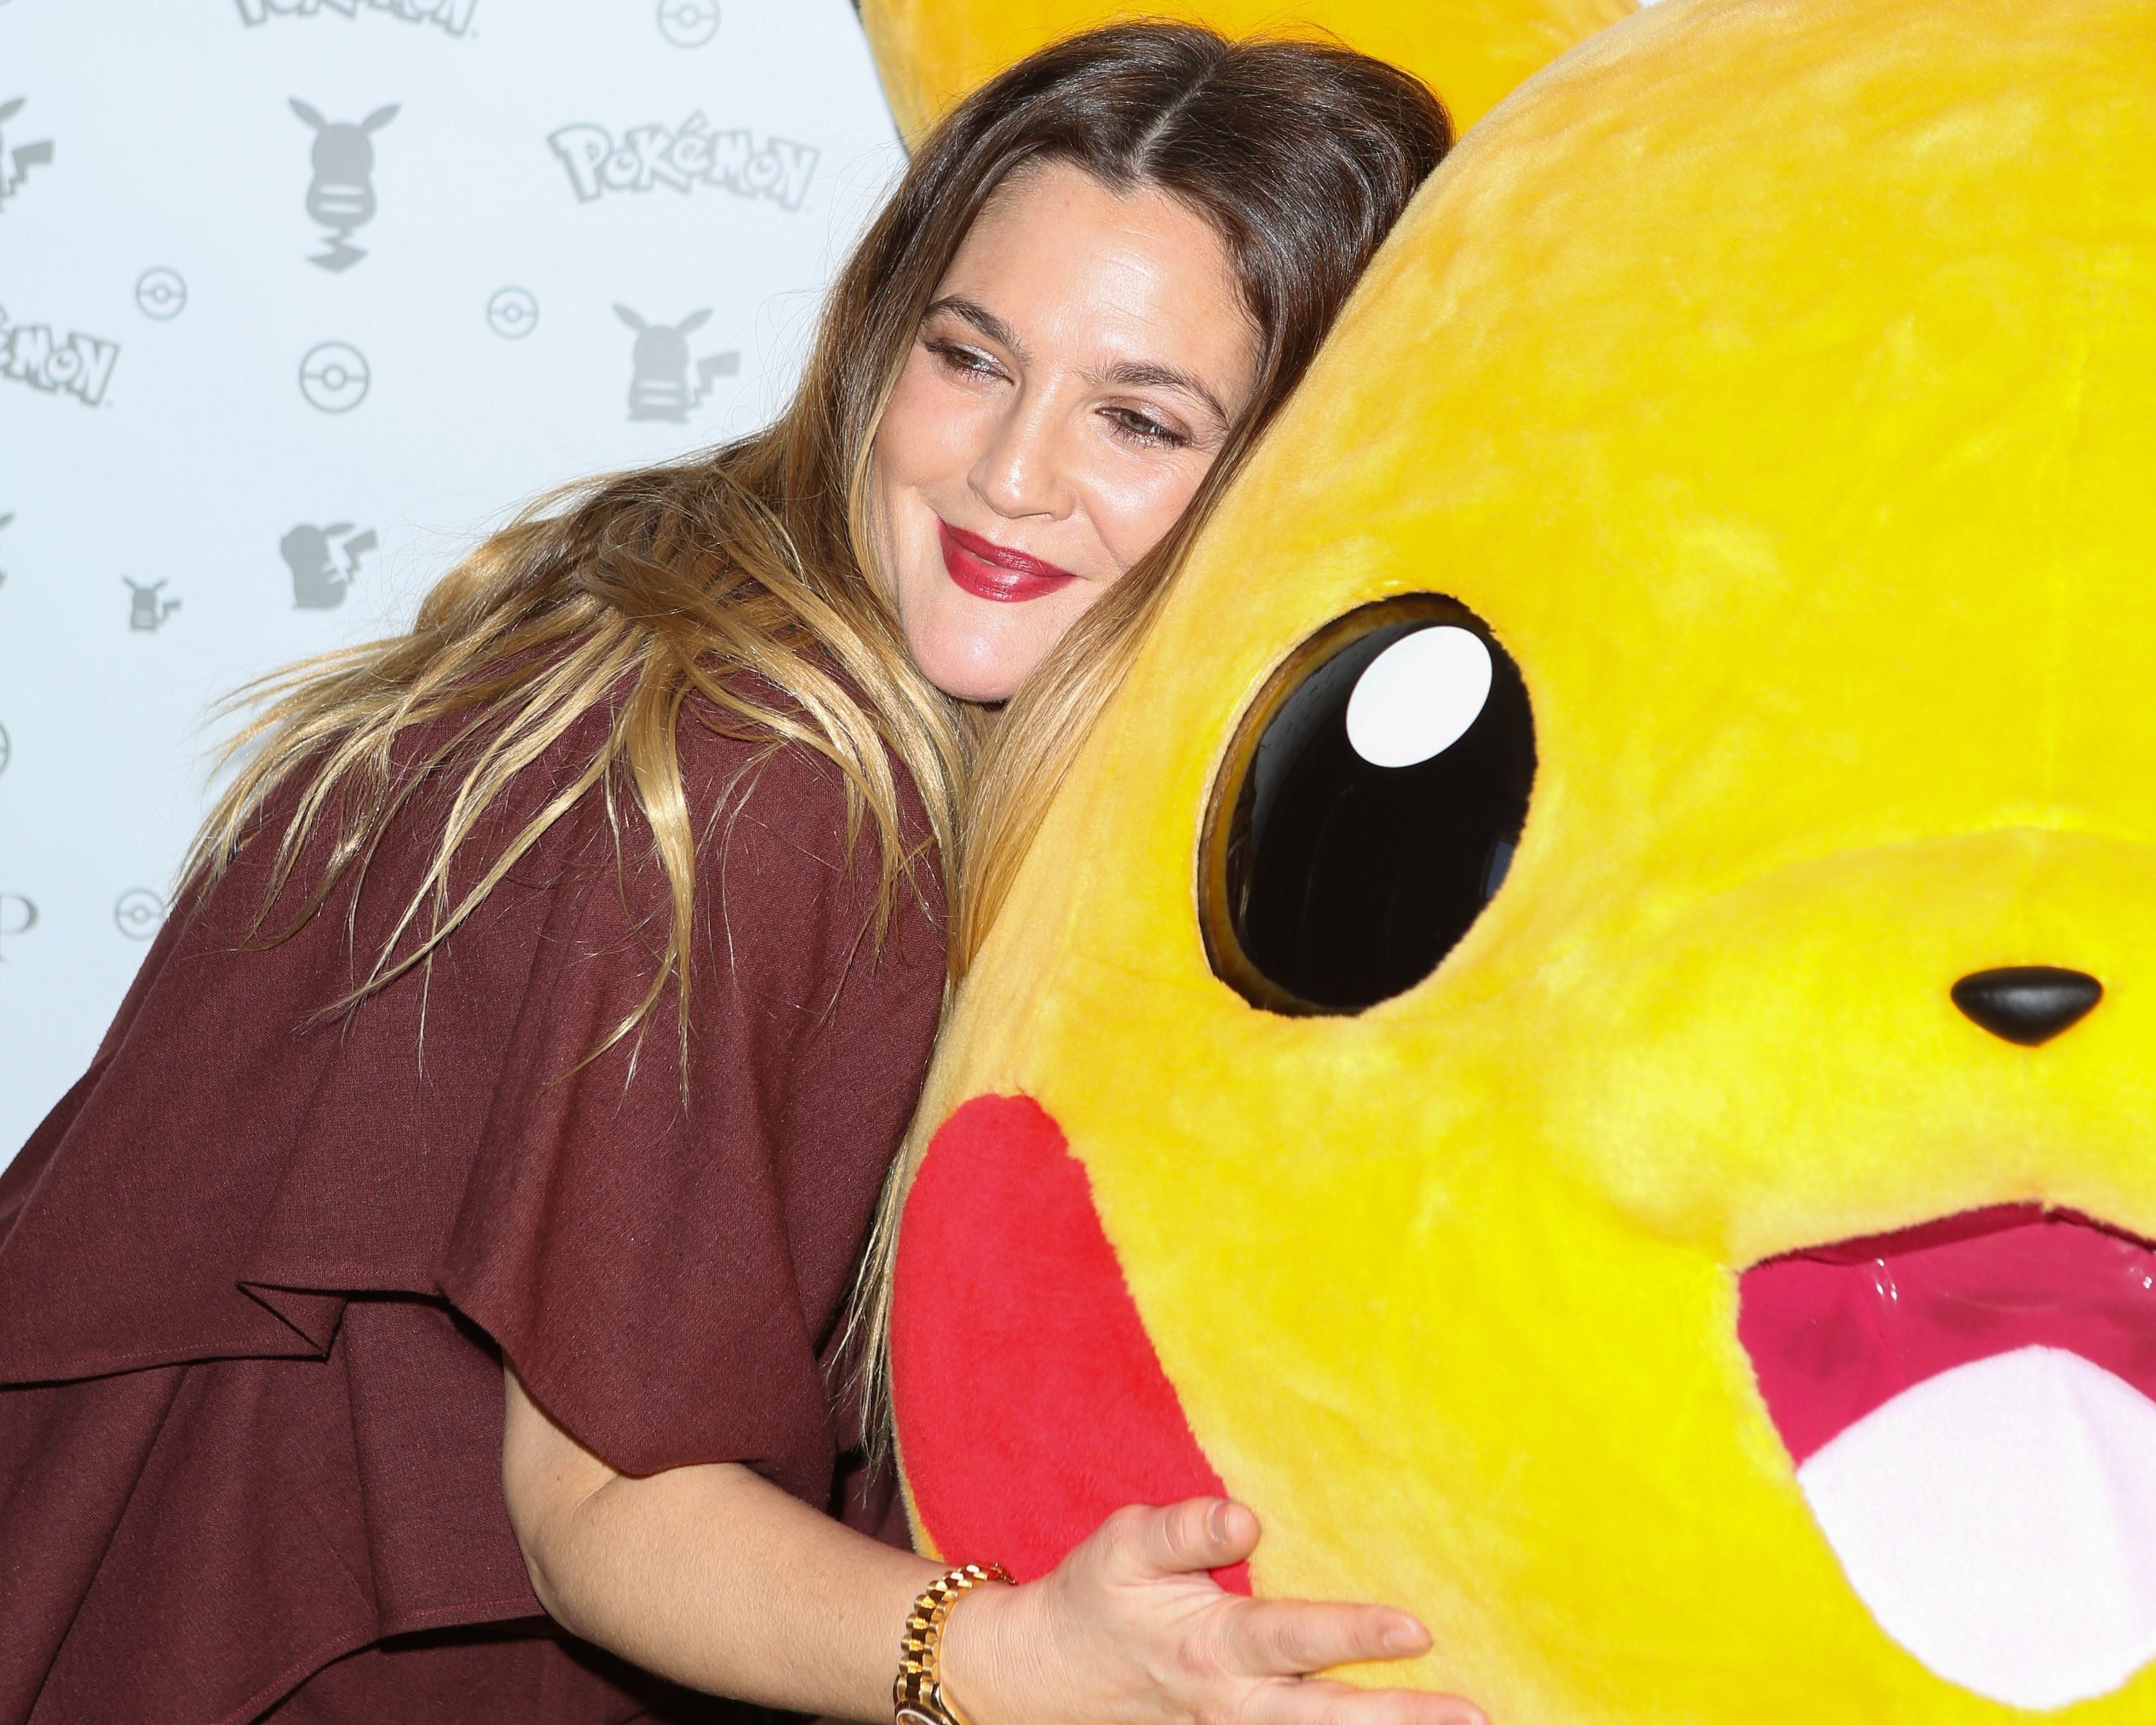 WEST HOLLYWOOD, CA - FEBRUARY 27:  Actress Drew Barrymore attends the Pokemon Afternoon Soiree at The Sunset Tower Hotel on February 27, 2016 in West Hollywood, California.  (Photo by Paul Archuleta/FilmMagic)